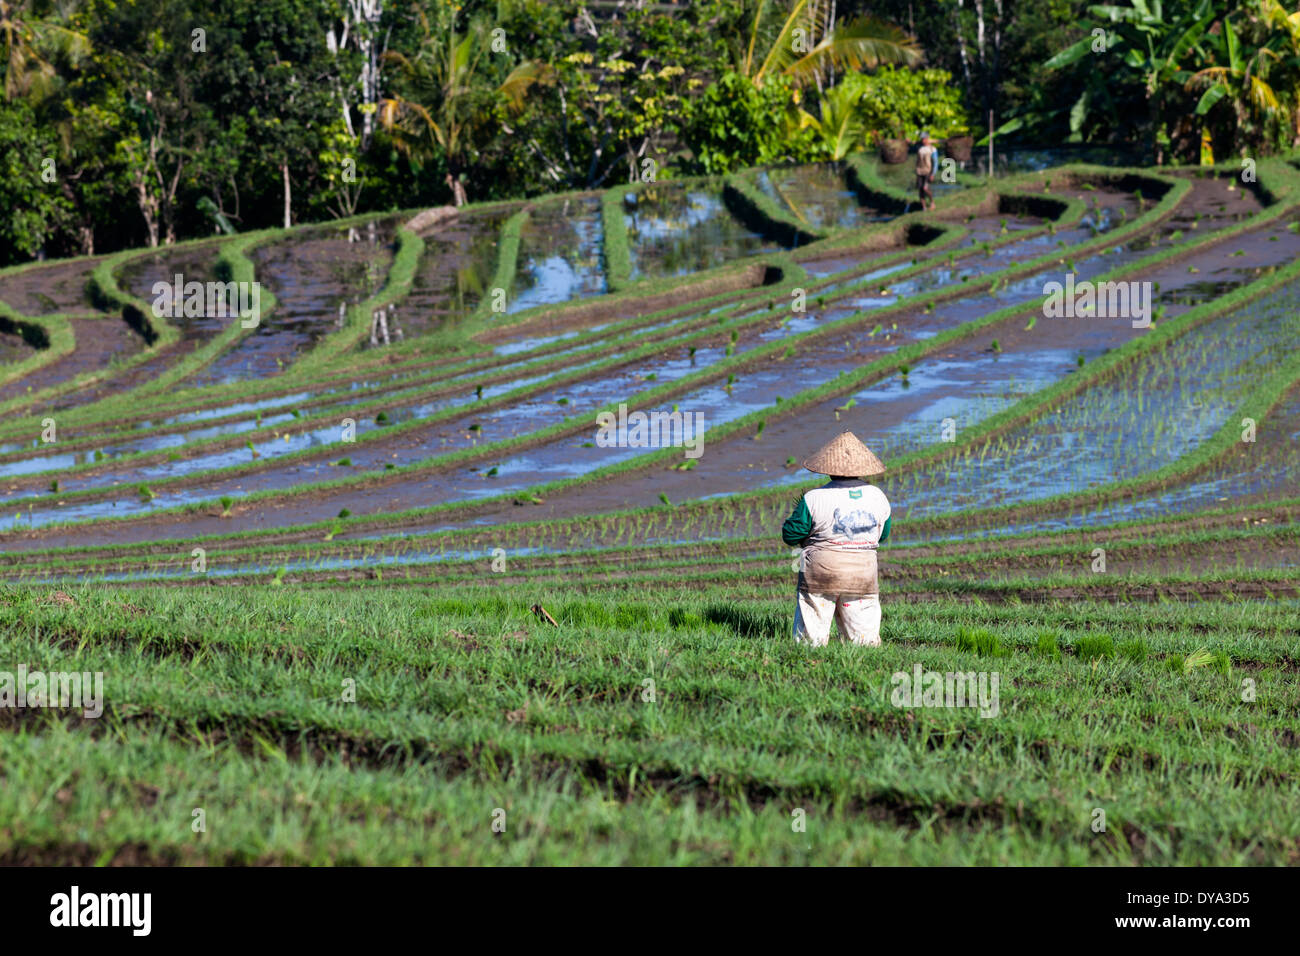 People working on rice field in region of Antosari and Belimbing (probably closer to Antosari), Tabanan Regency, Bali, Indonesia - Stock Image